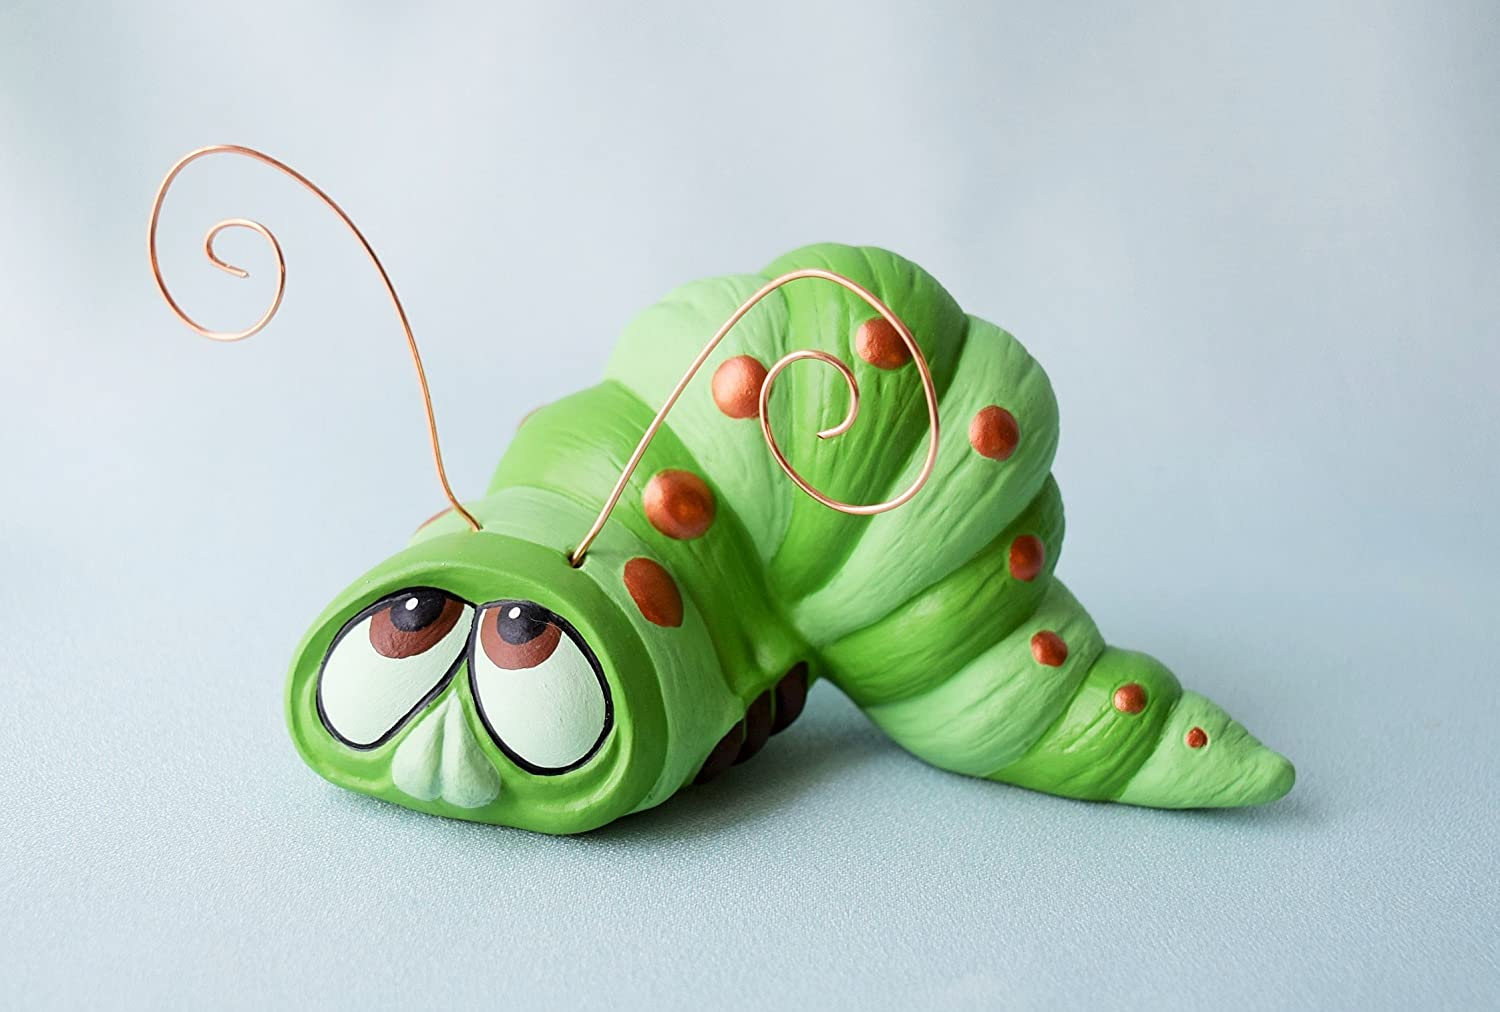 Ceramic Worm Figurine Yard Art